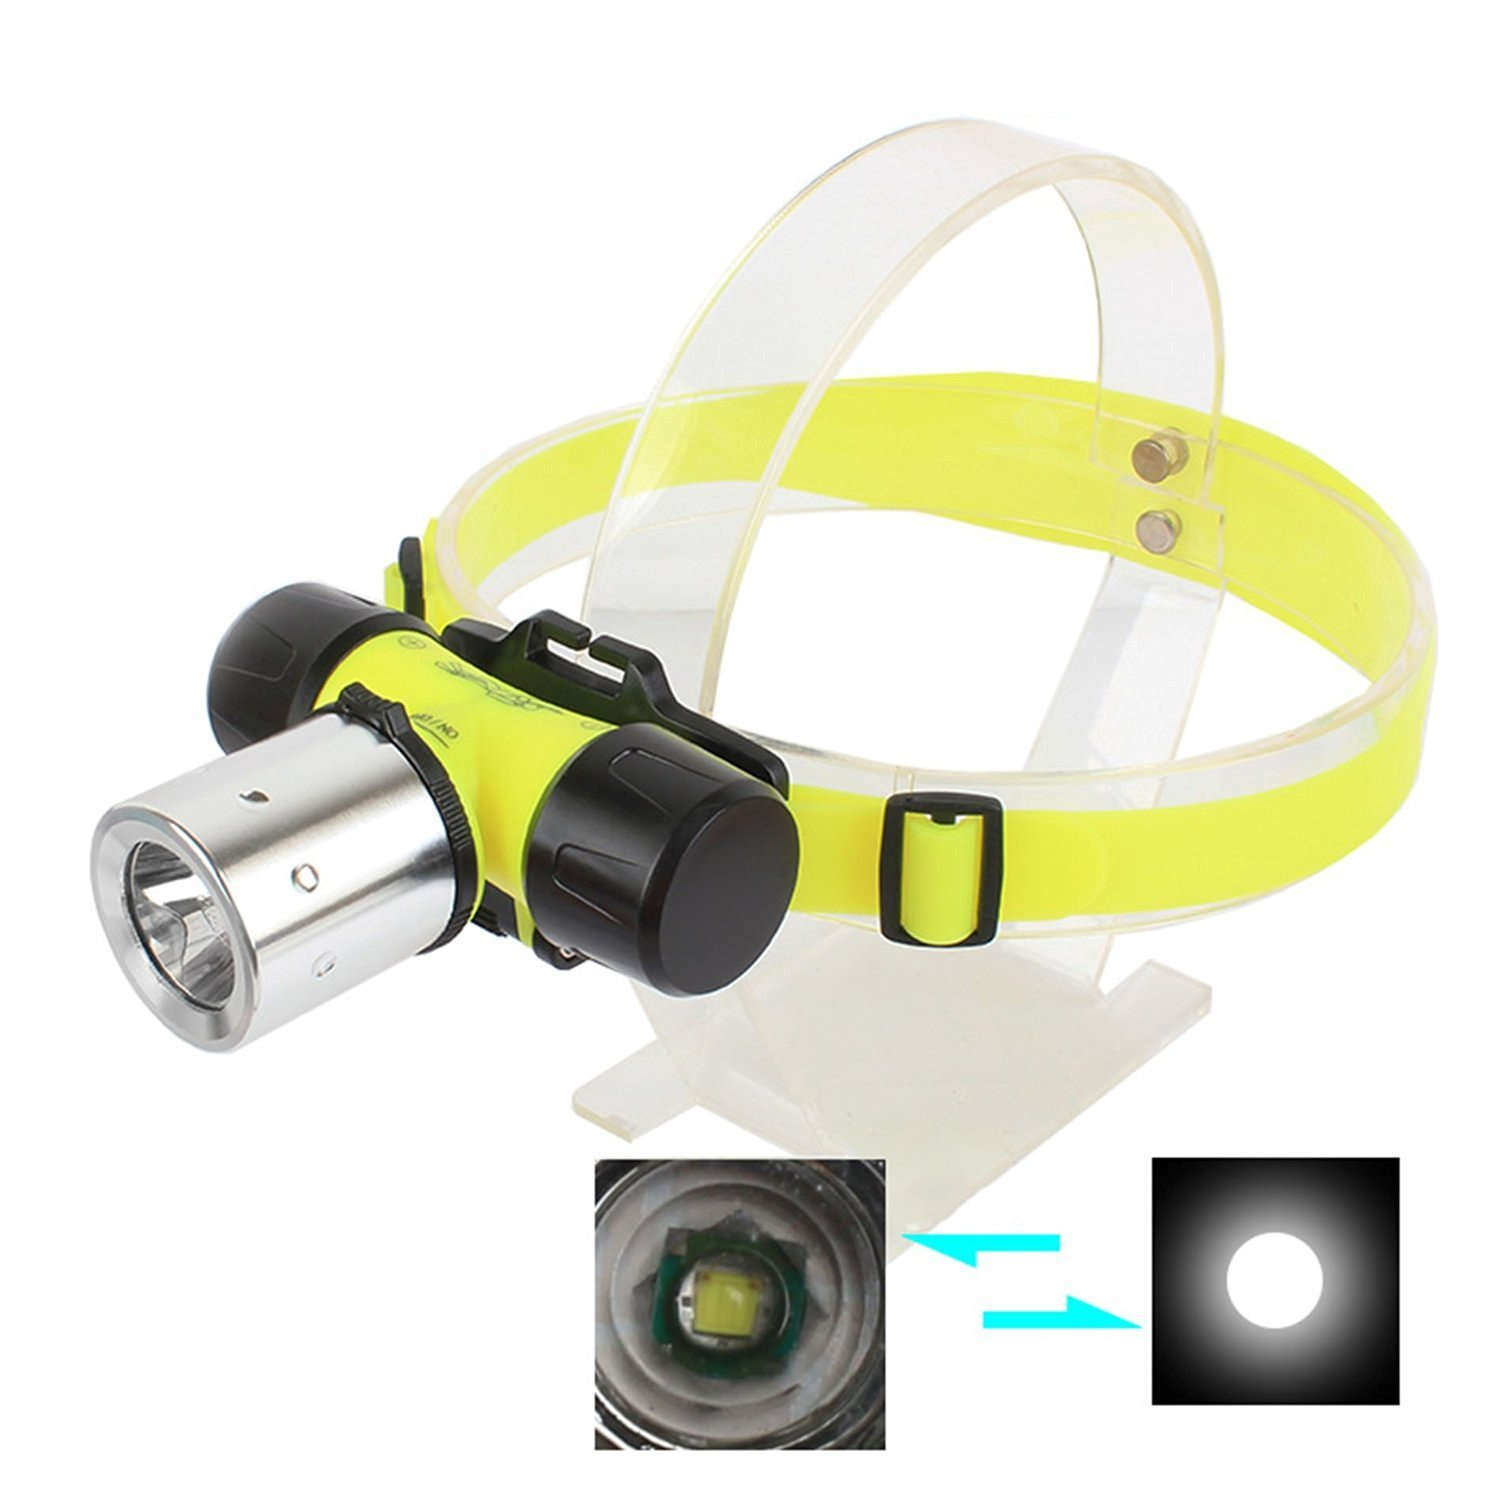 Xm-l T6 Led Diving Waterproof Underwater Flashlight Lamp Torch 3 Mode Super T6 Led 2000lm 2*18650 Batteries Charger